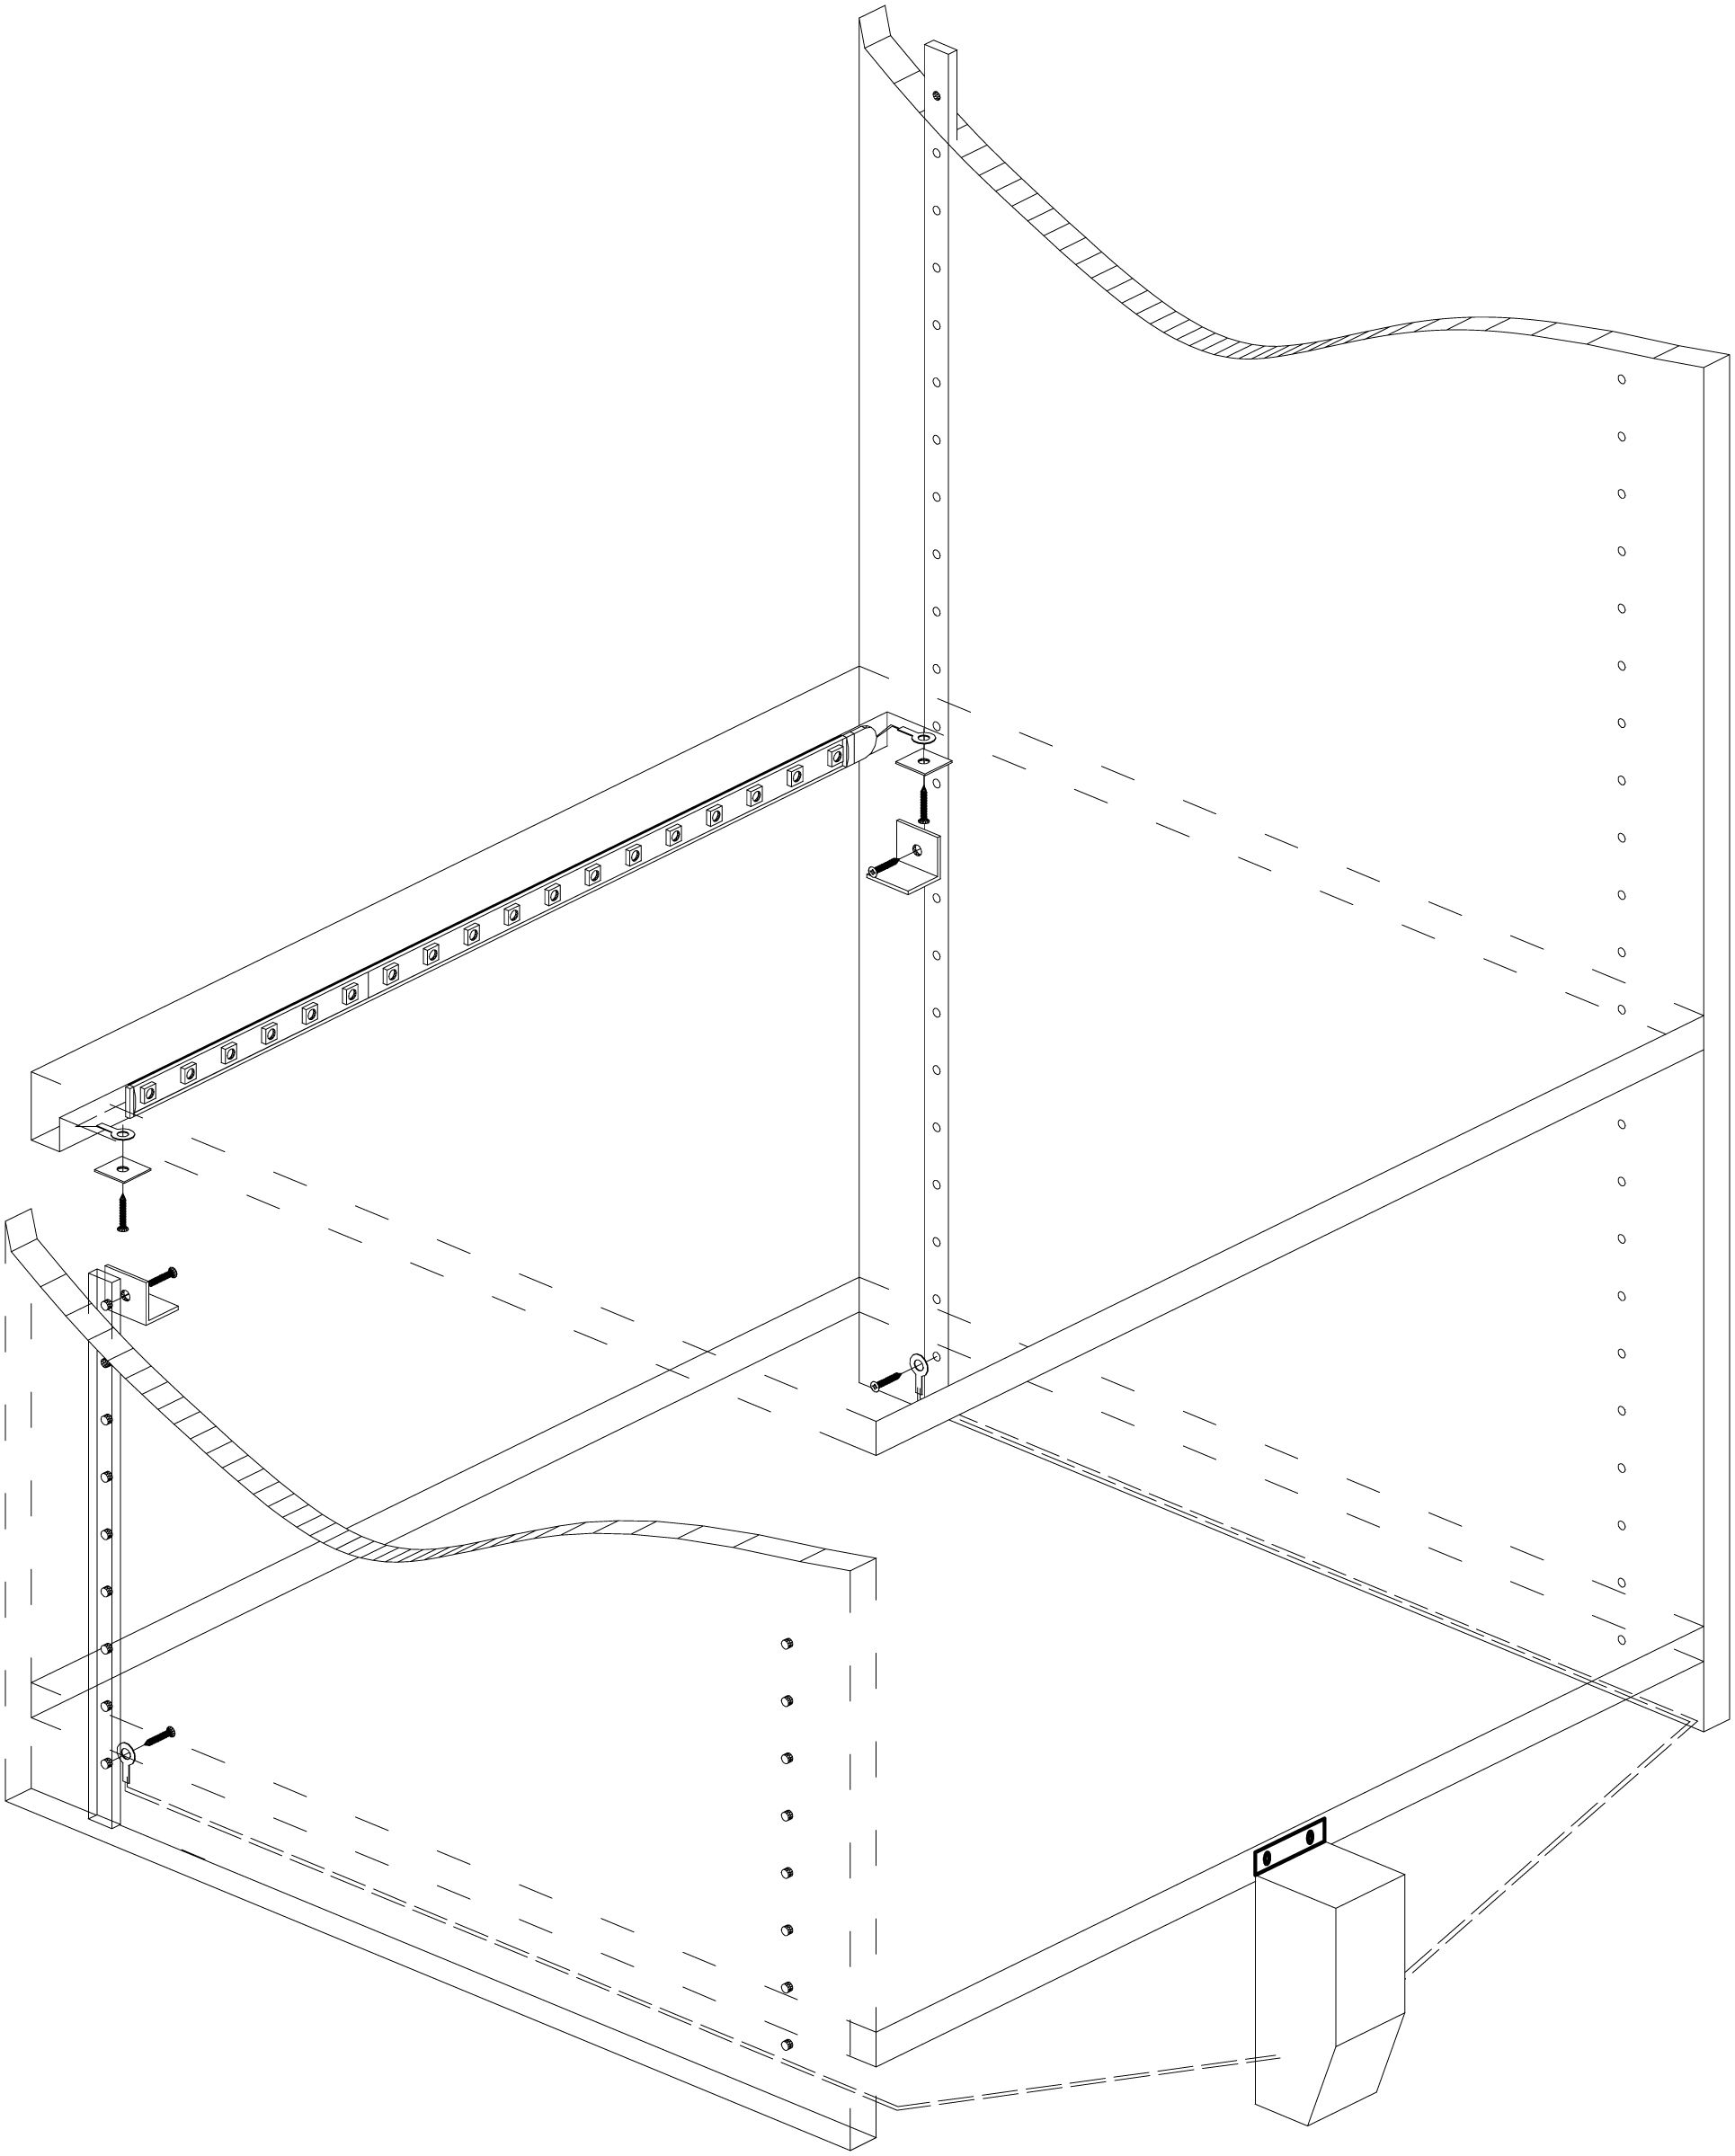 Wiring Of A Movable Shelf With Led Light Strips Positive